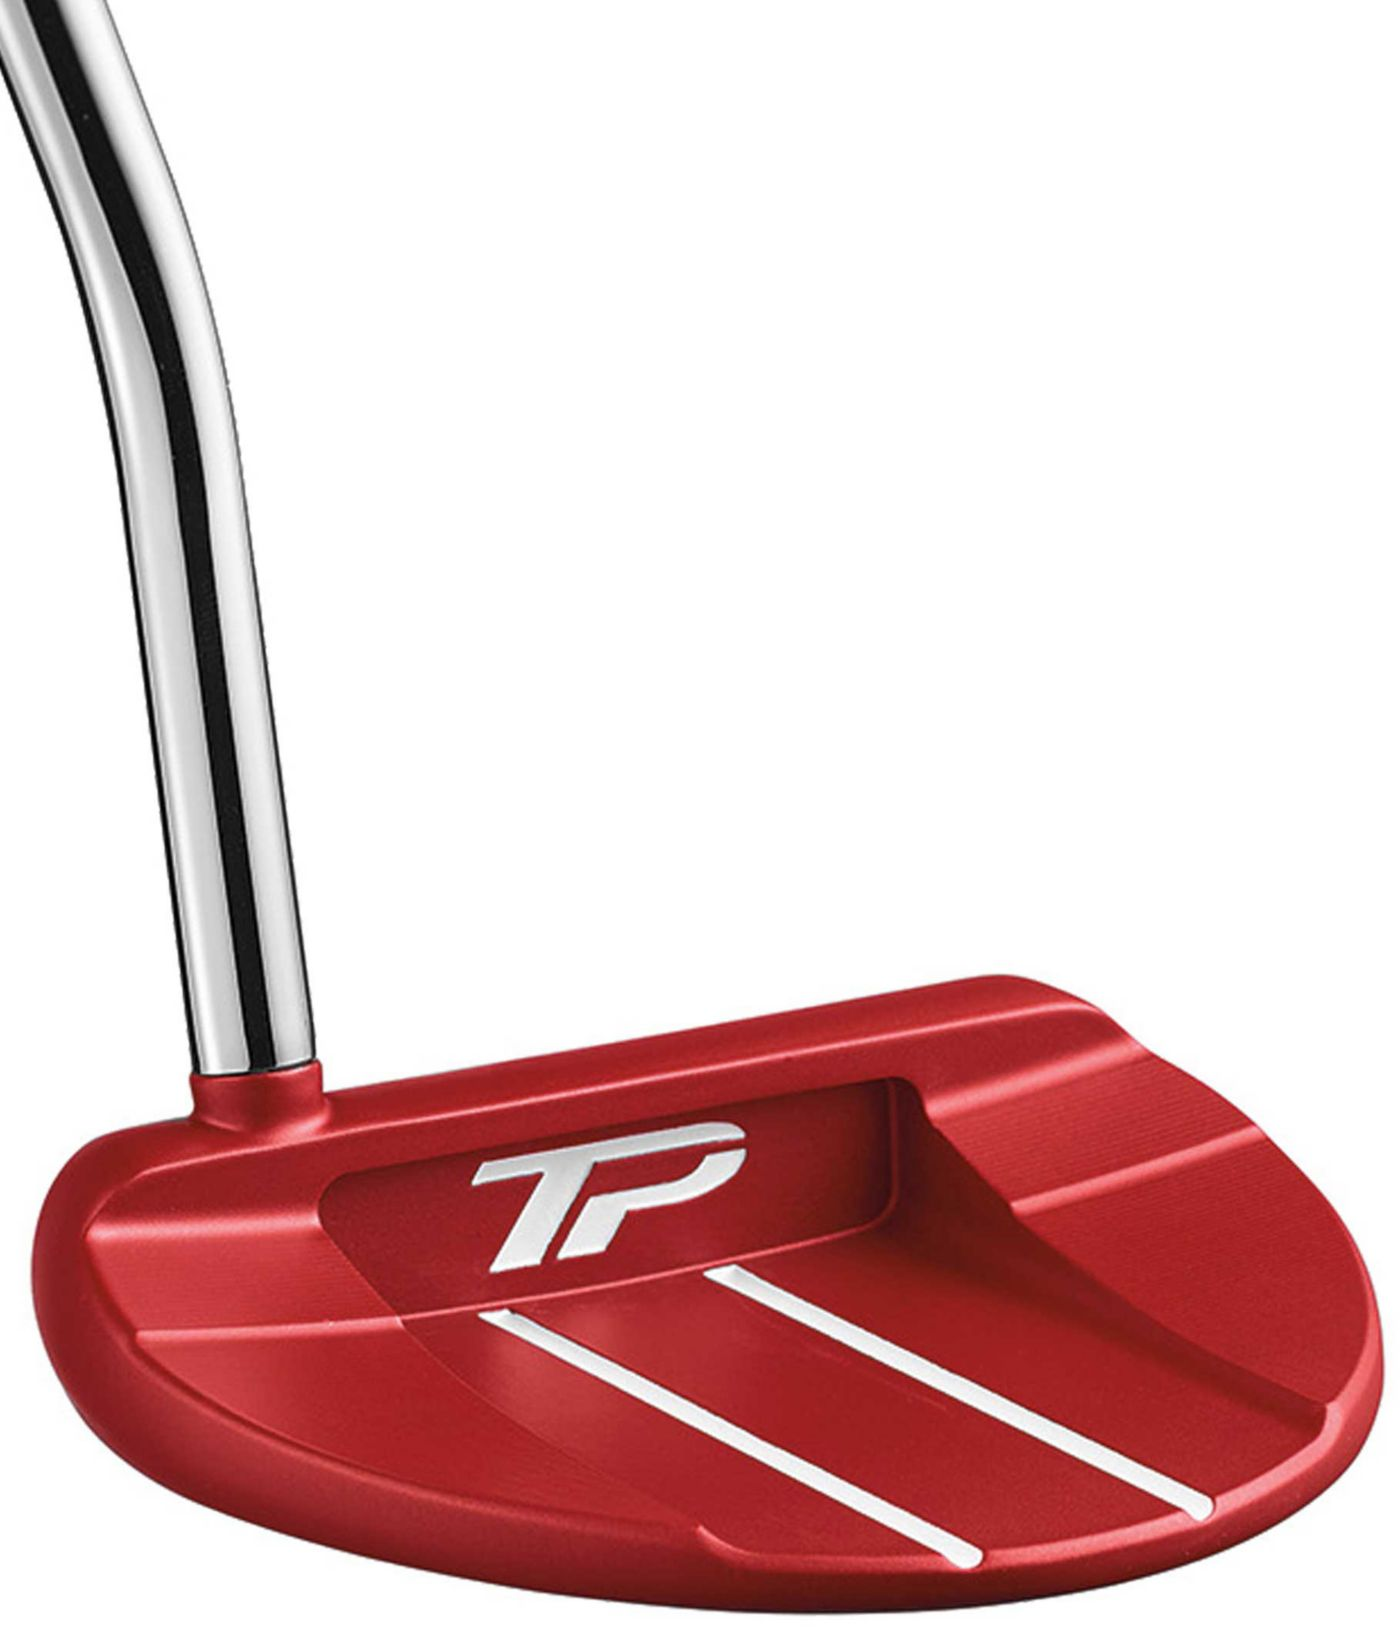 TaylorMade TP Collection Ardmore Red Putter